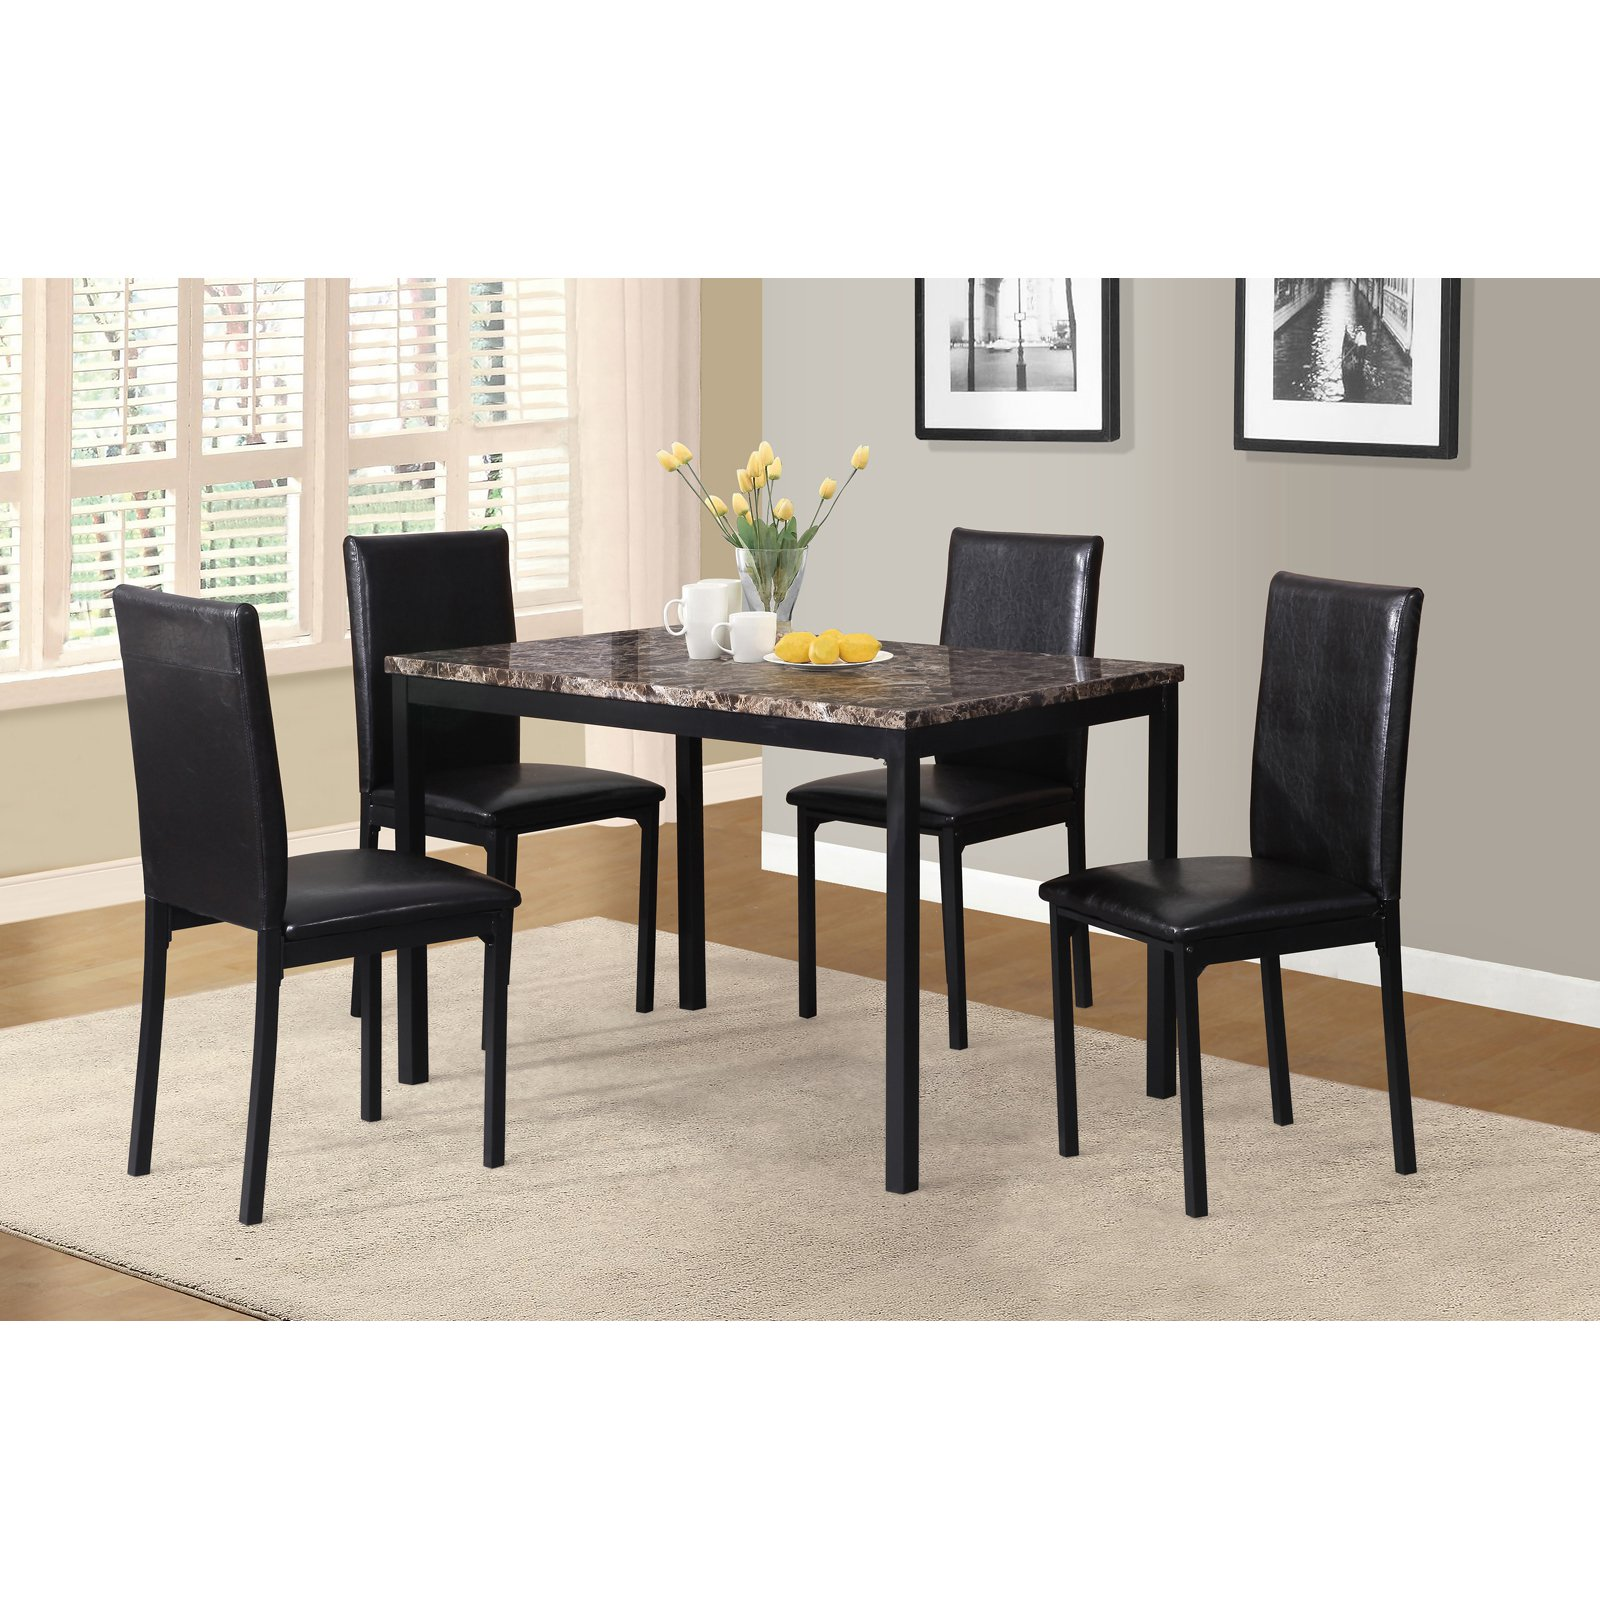 Modern 5pc Dining Table Set Kitchen Dinette Chairs: Dining Room Table Set Kitchen Tables And Chairs Modern